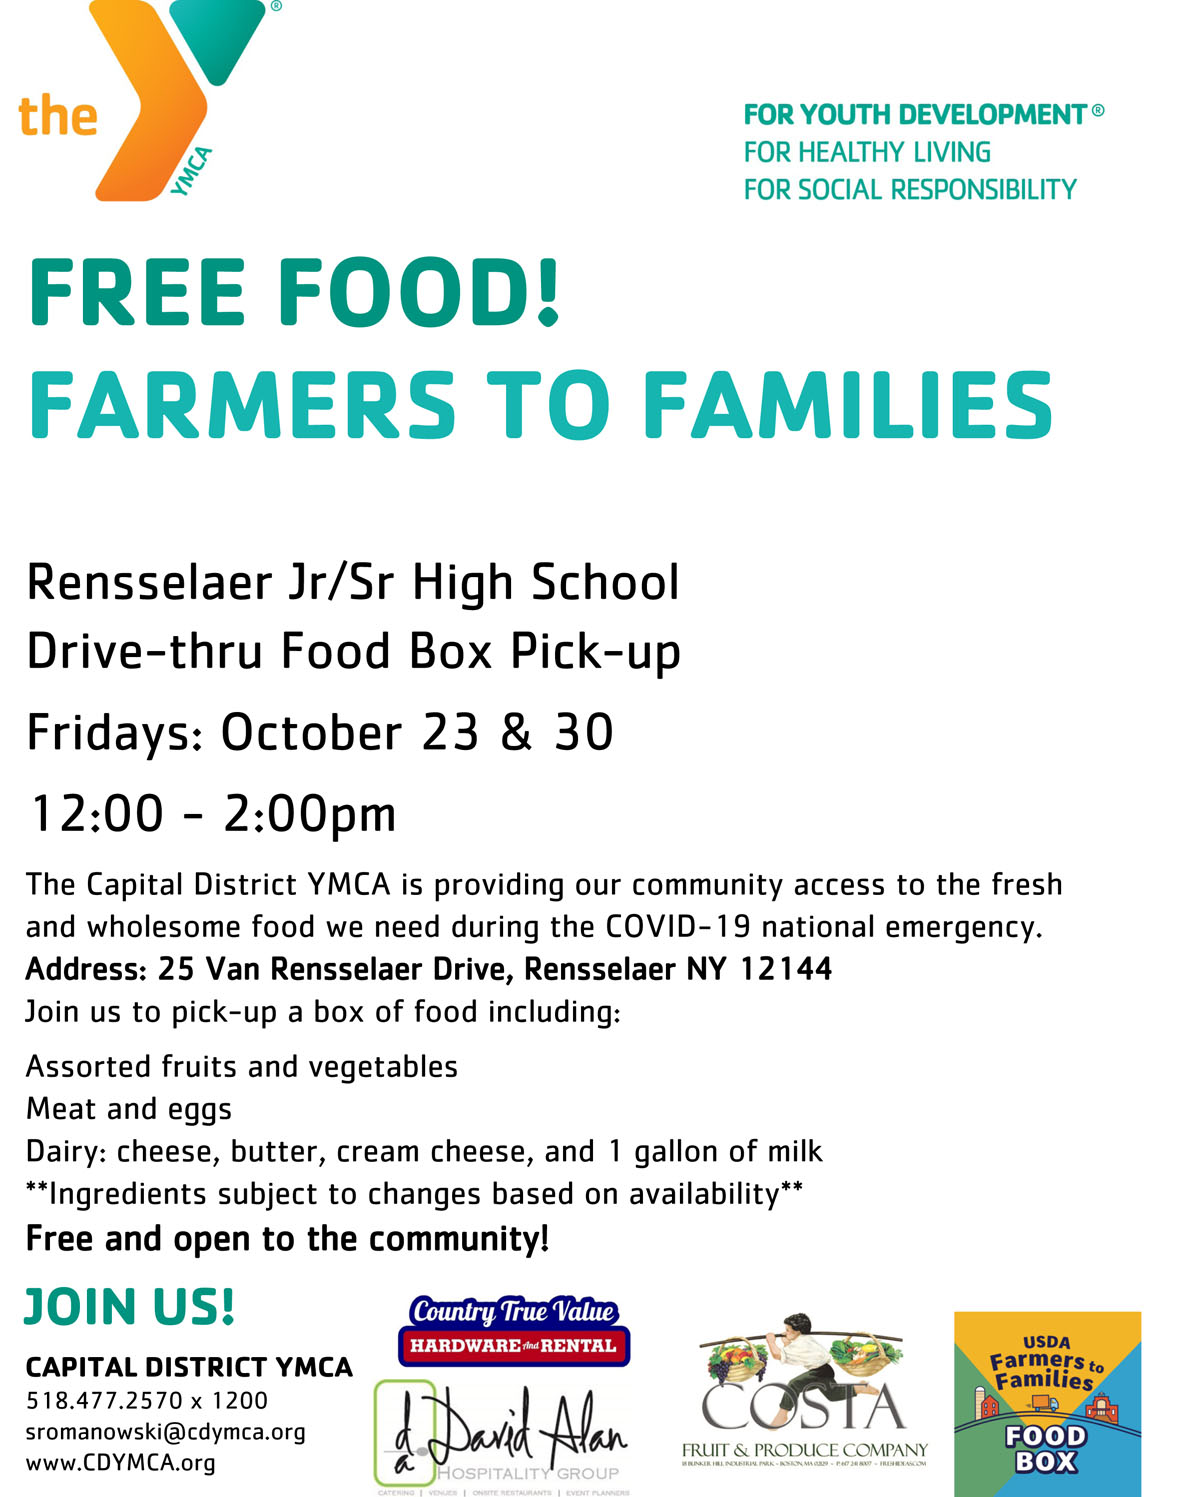 Rensselaer Farmer to Families New Location